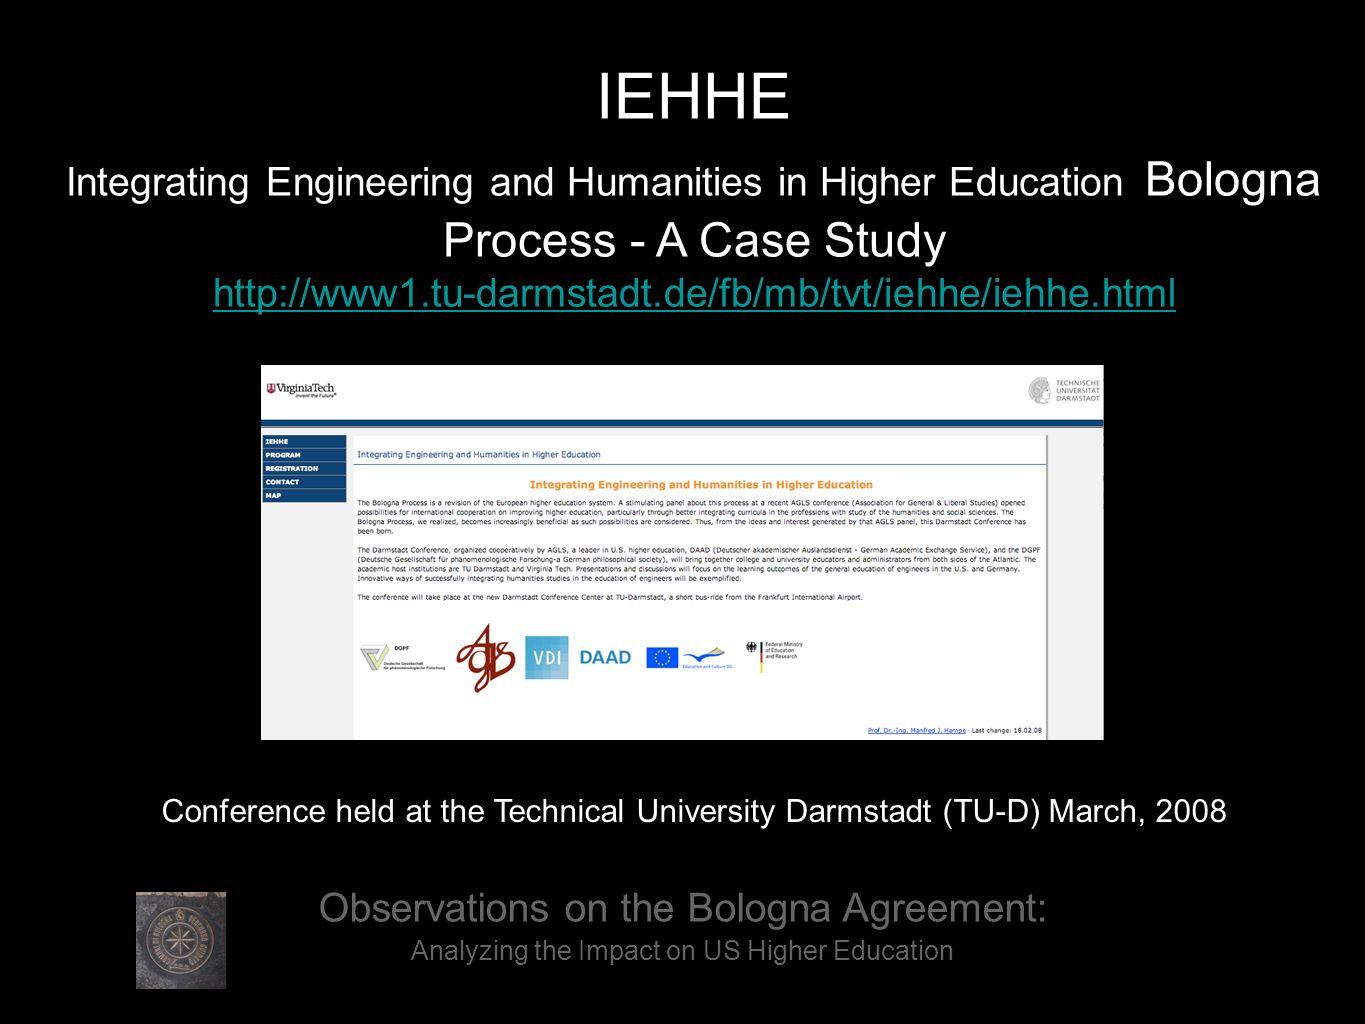 Observations on the Bologna Agreement: Analyzing the Impact on US Higher Education IEHHE Integrating Engineering and Humanities in Higher Education Bologna Process - A Case Study http://www1.tu-darmstadt.de/fb/mb/tvt/iehhe/iehhe.html Conference held at the Technical University Darmstadt (TU-D) March, 2008